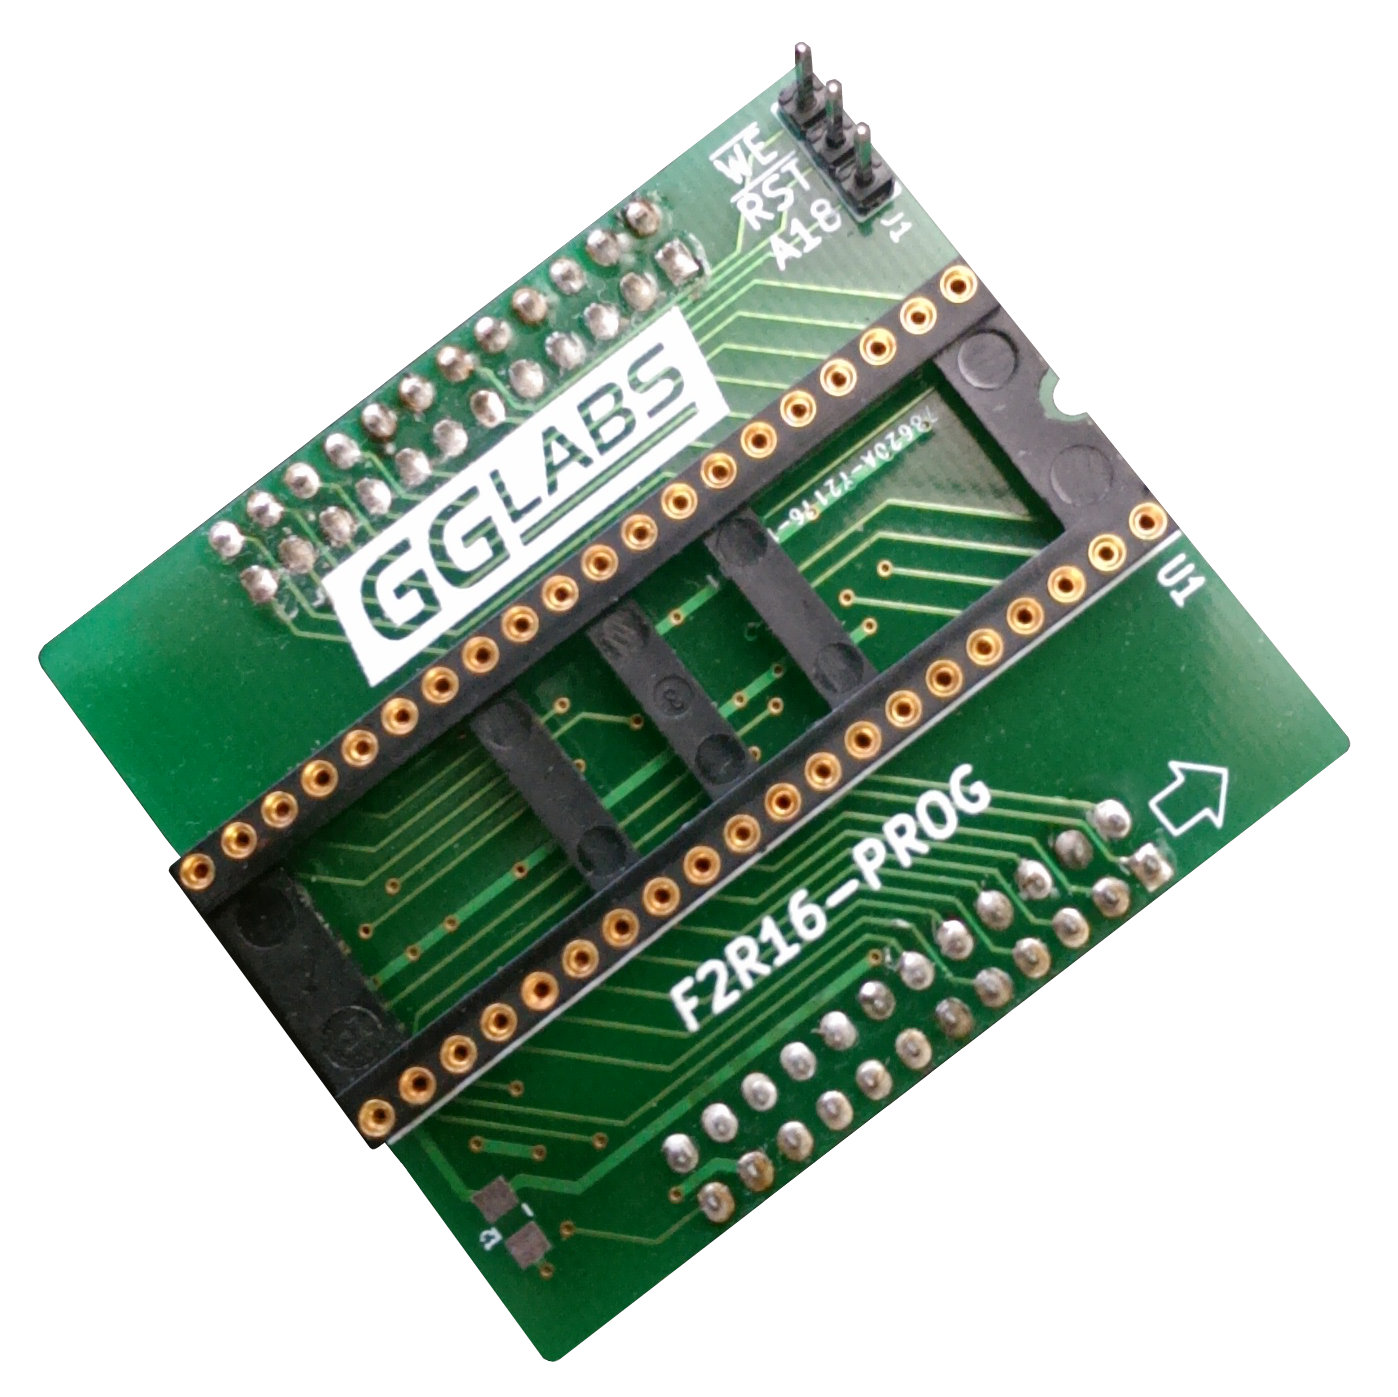 F2R16 - Flash based ROM Replacement for Amiga Computers   gglabs us